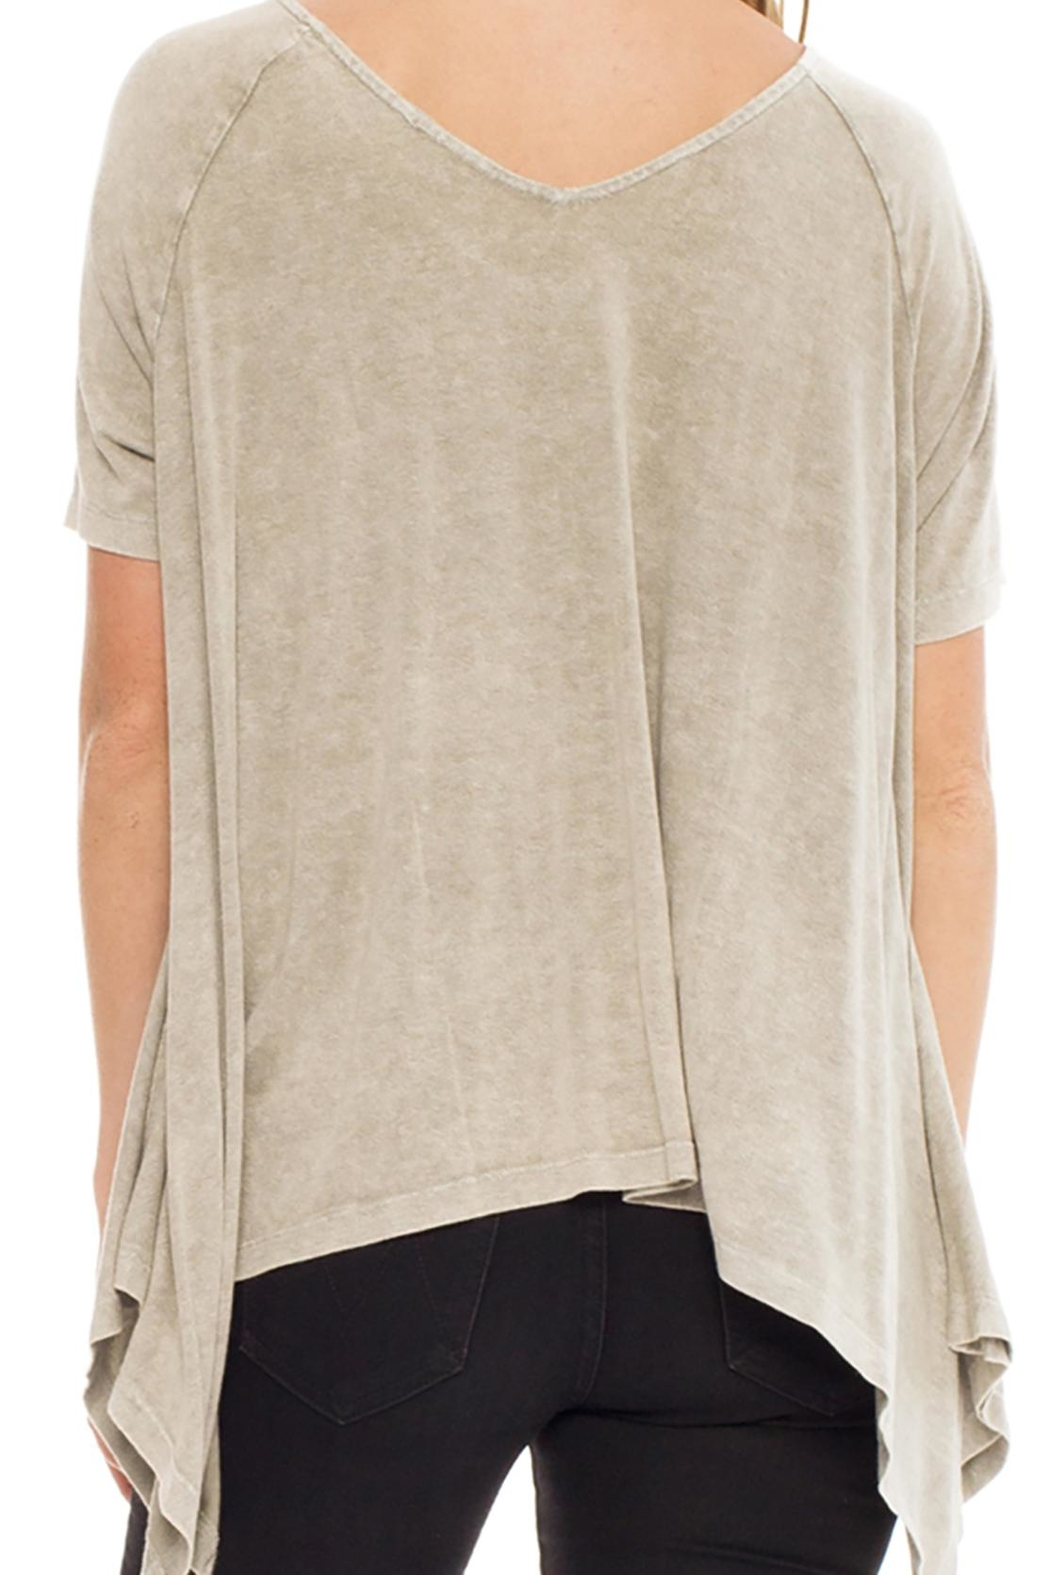 Anama Distressed Handkerchief Tee - Front Full Image